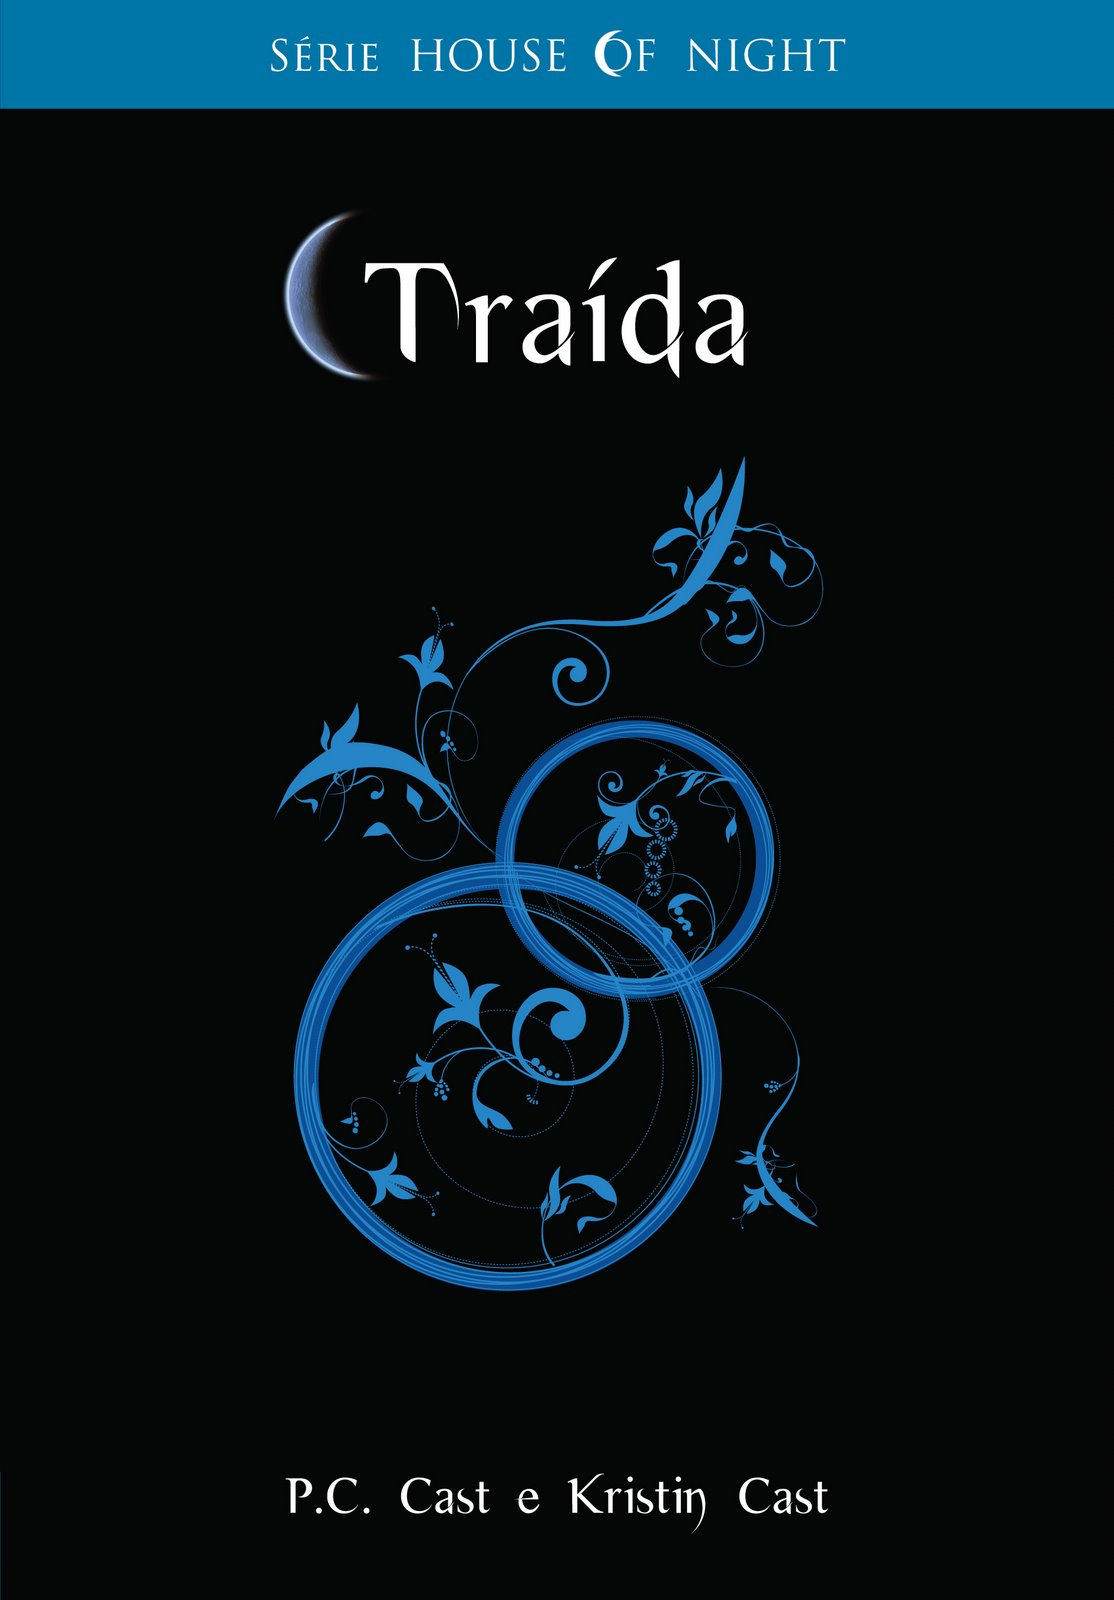 Traída Série House of Night